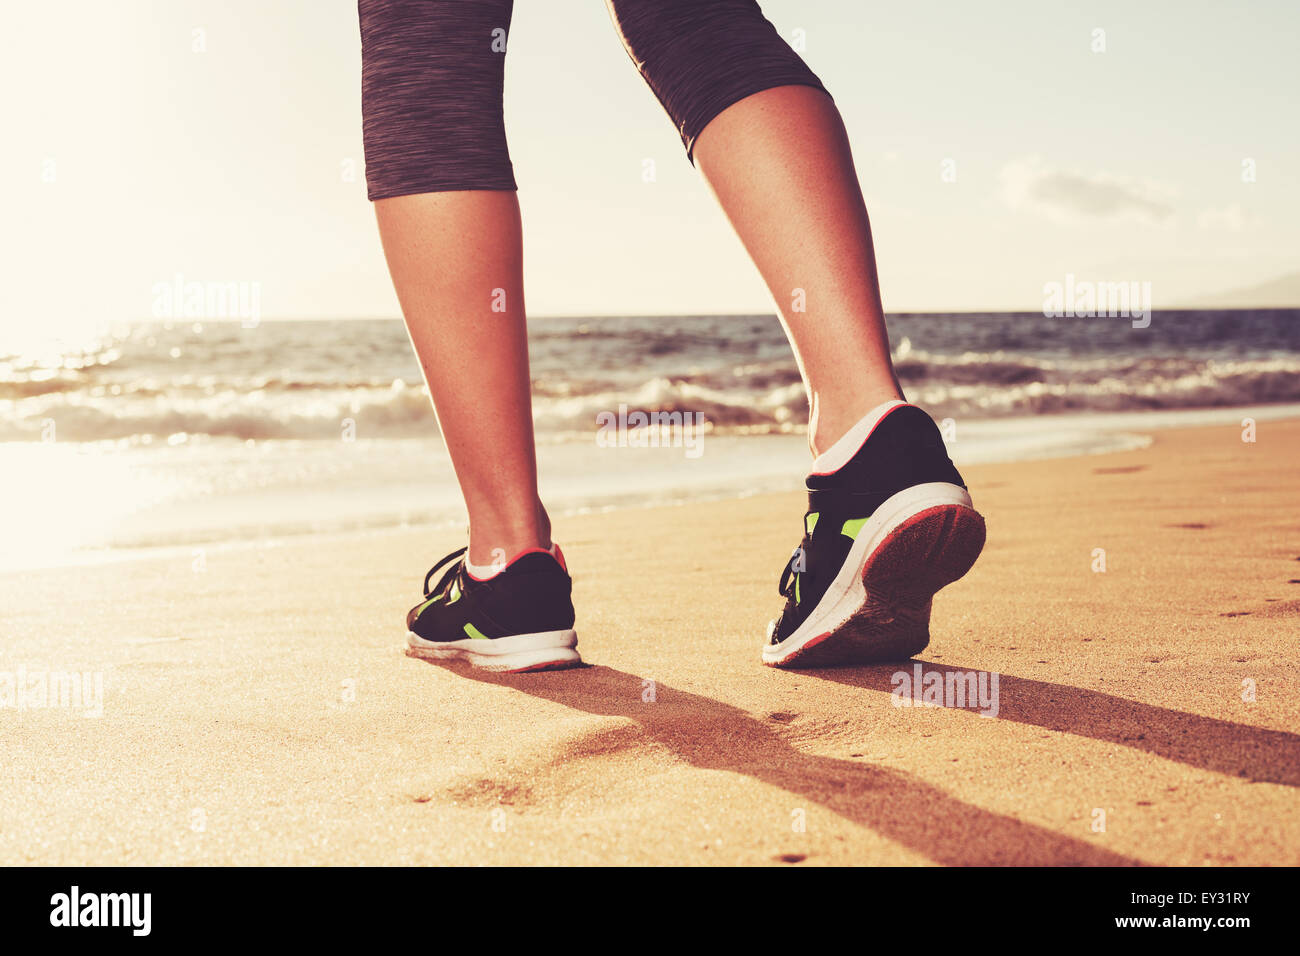 Close up of runner's feet at Sunset. Fitness woman, workout wellness lifestyle concept. - Stock Image